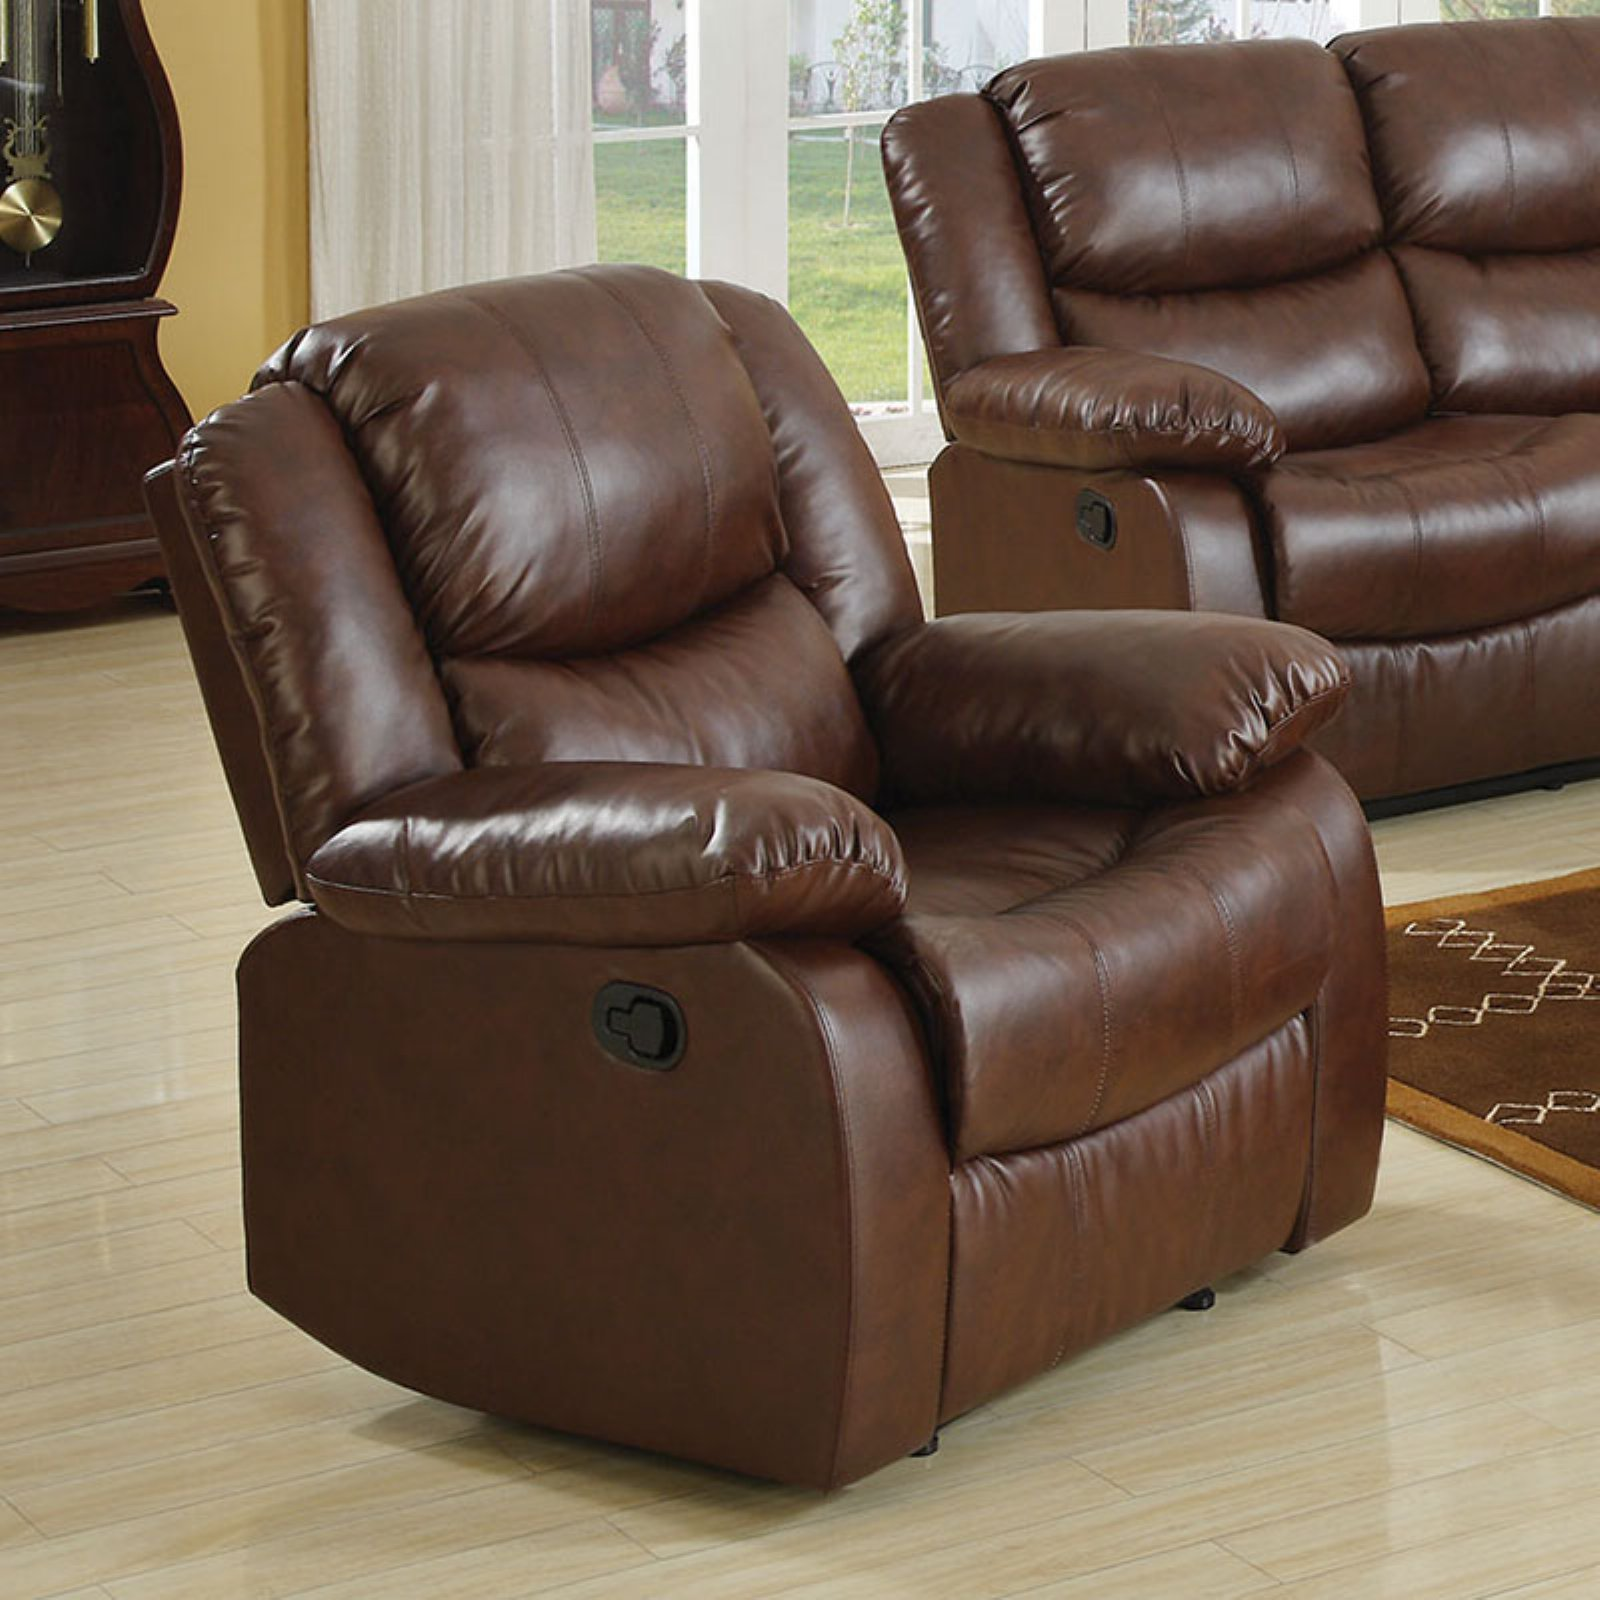 Acme Fullerton Recliner, Brown Bonded Leather Match by Acme Furniture